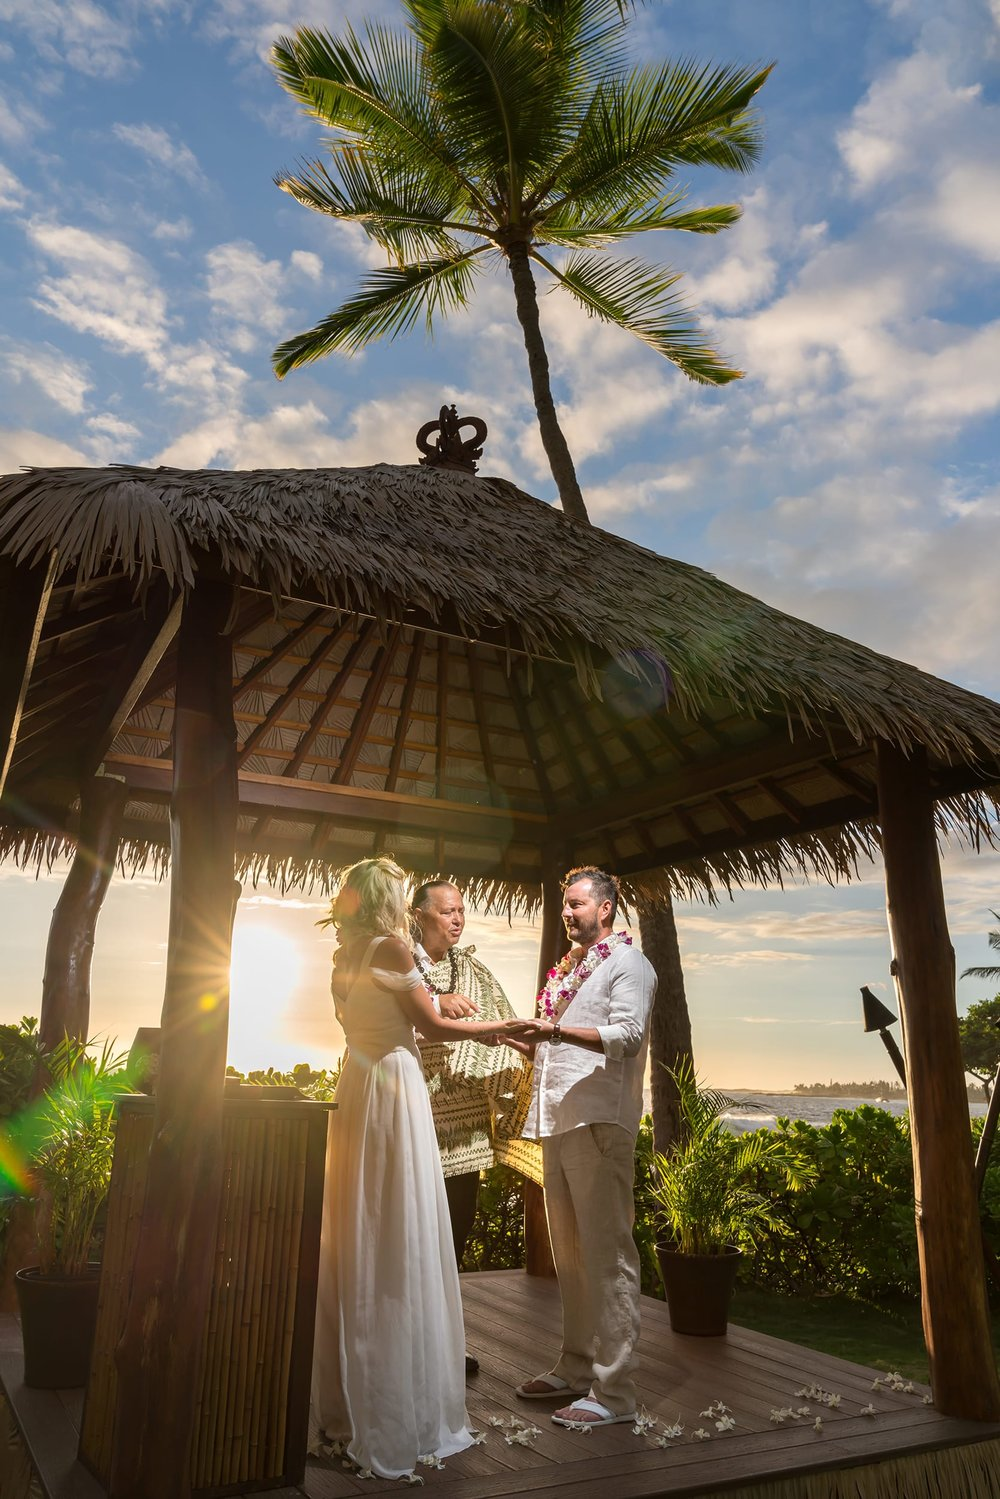 Roya-Kona-Resort-Elopement-Elzbieta-Piotr-hawaii-photographer7.jpg